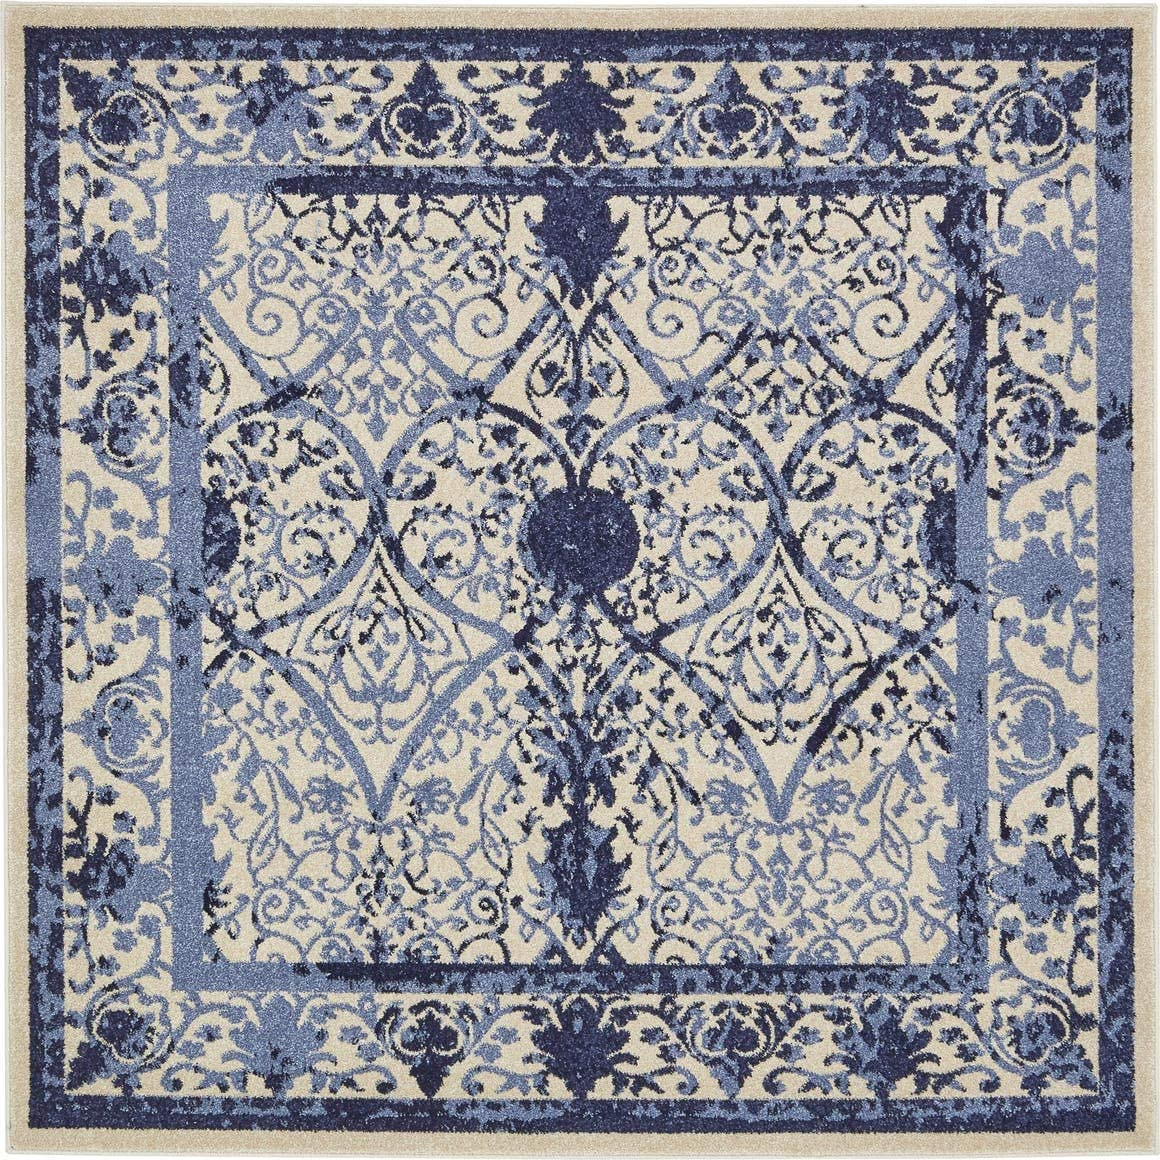 Unique Loom La Jolla Collection Tone-on-Tone Traditional Ivory Blue Square Rug 6 0 x 6 0